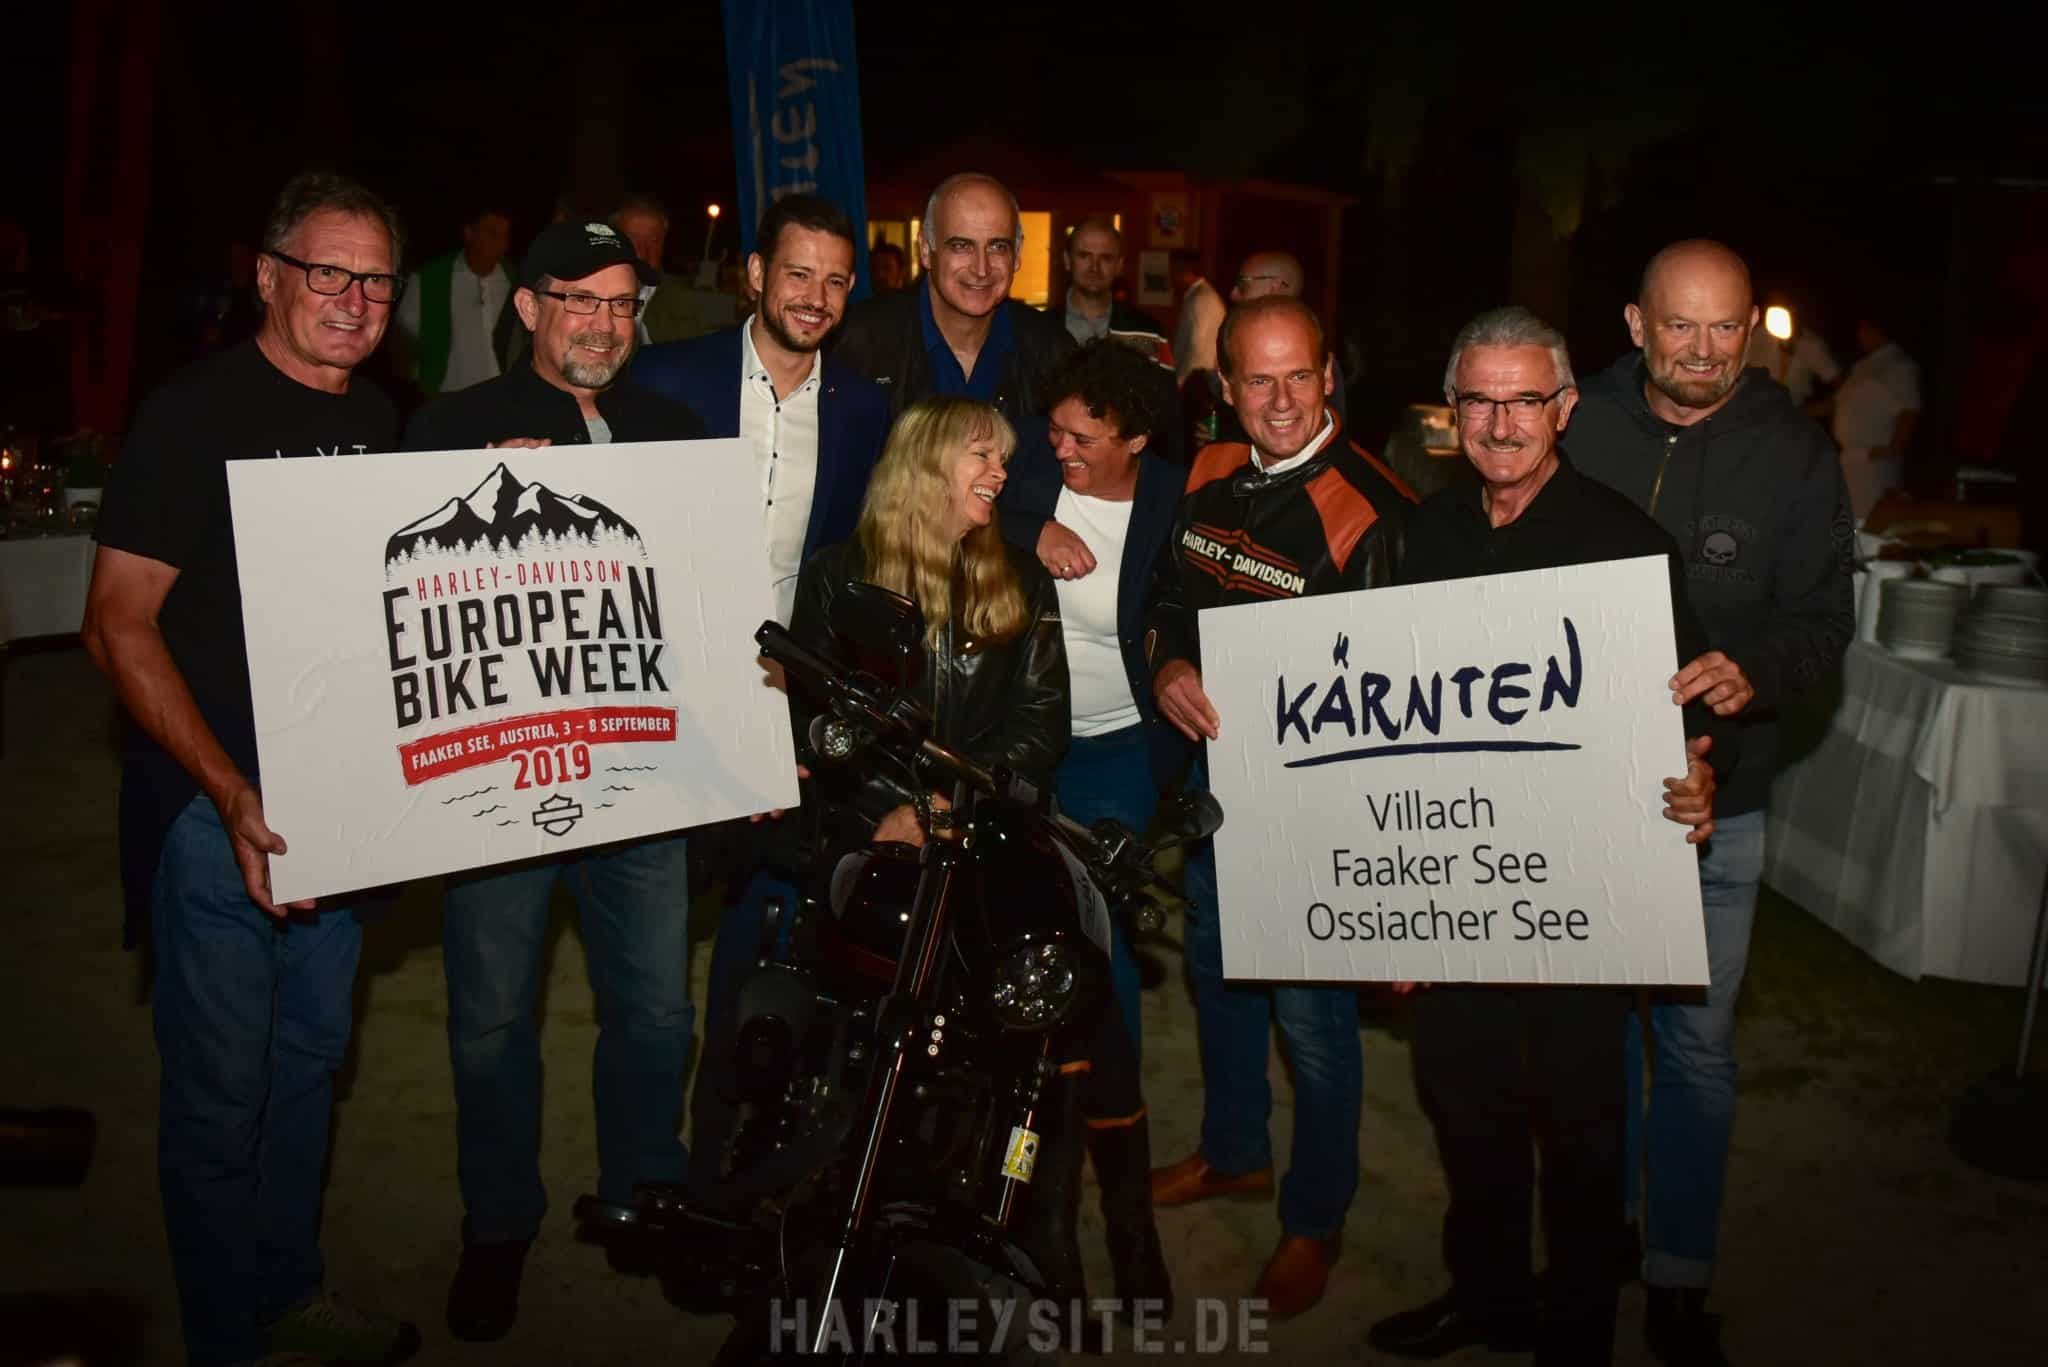 Die European Bike Week 2019 läuft